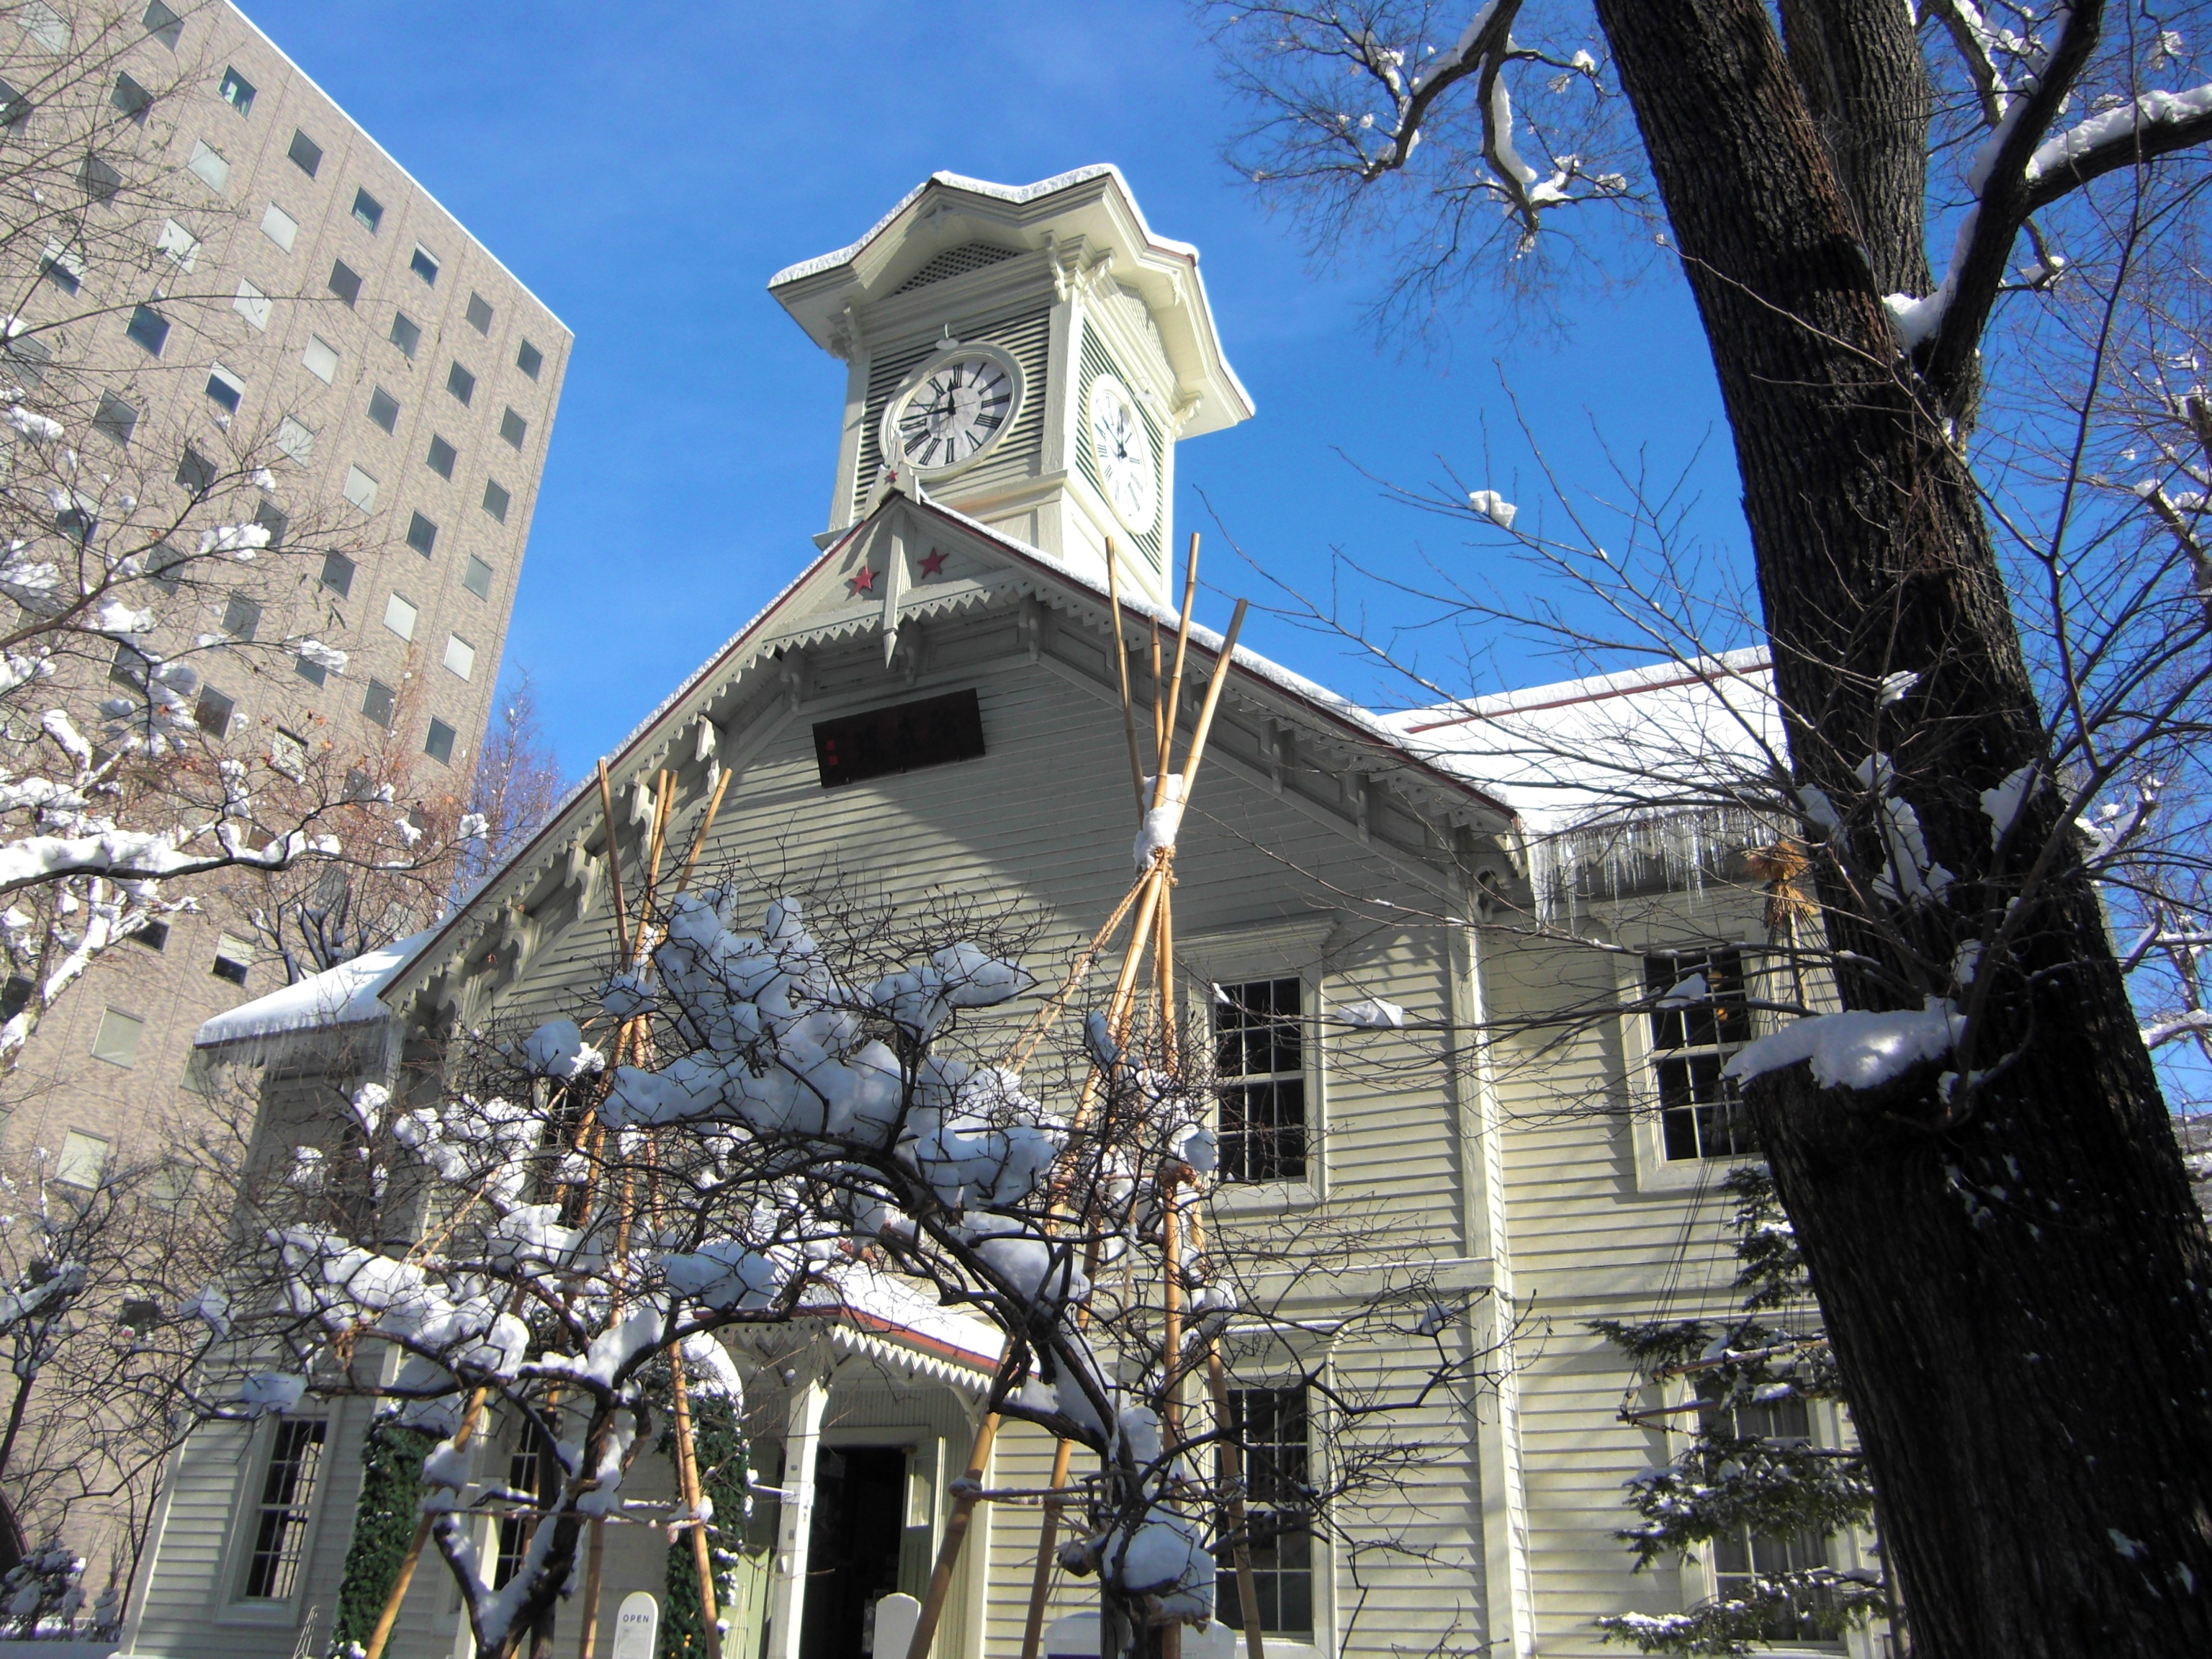 Sapporo Clock Tower - Public Building in Sapporo - Thousand Wonders